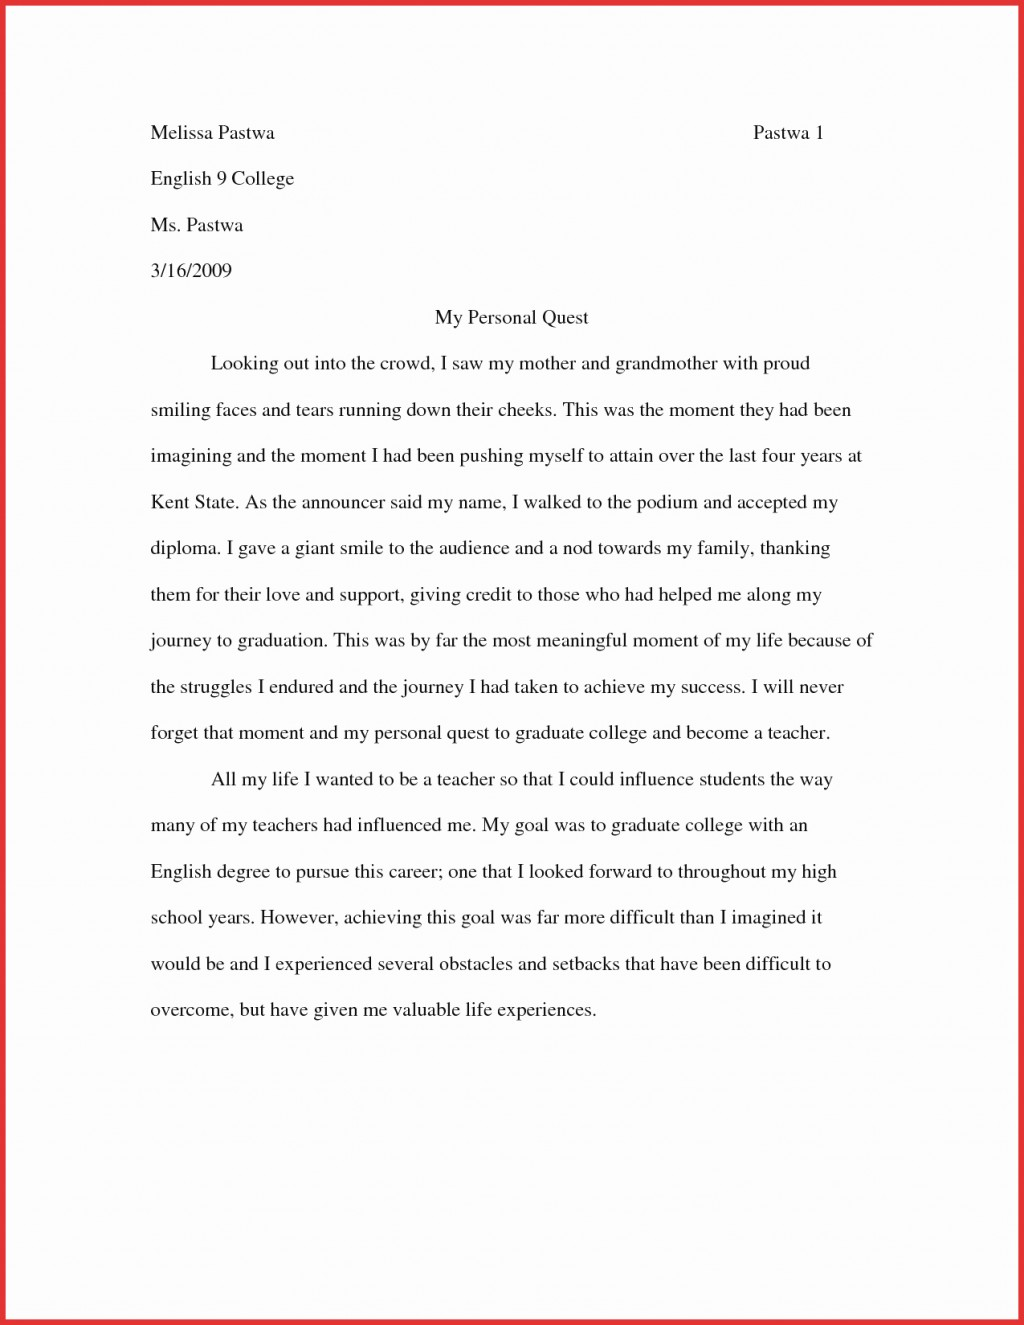 007 Essay Example Higher English Imaginative Ideas Narrative Personal Examples Best College Creative O Side Response Writing Nonfiction Pdf Phenomenal Advanced Large